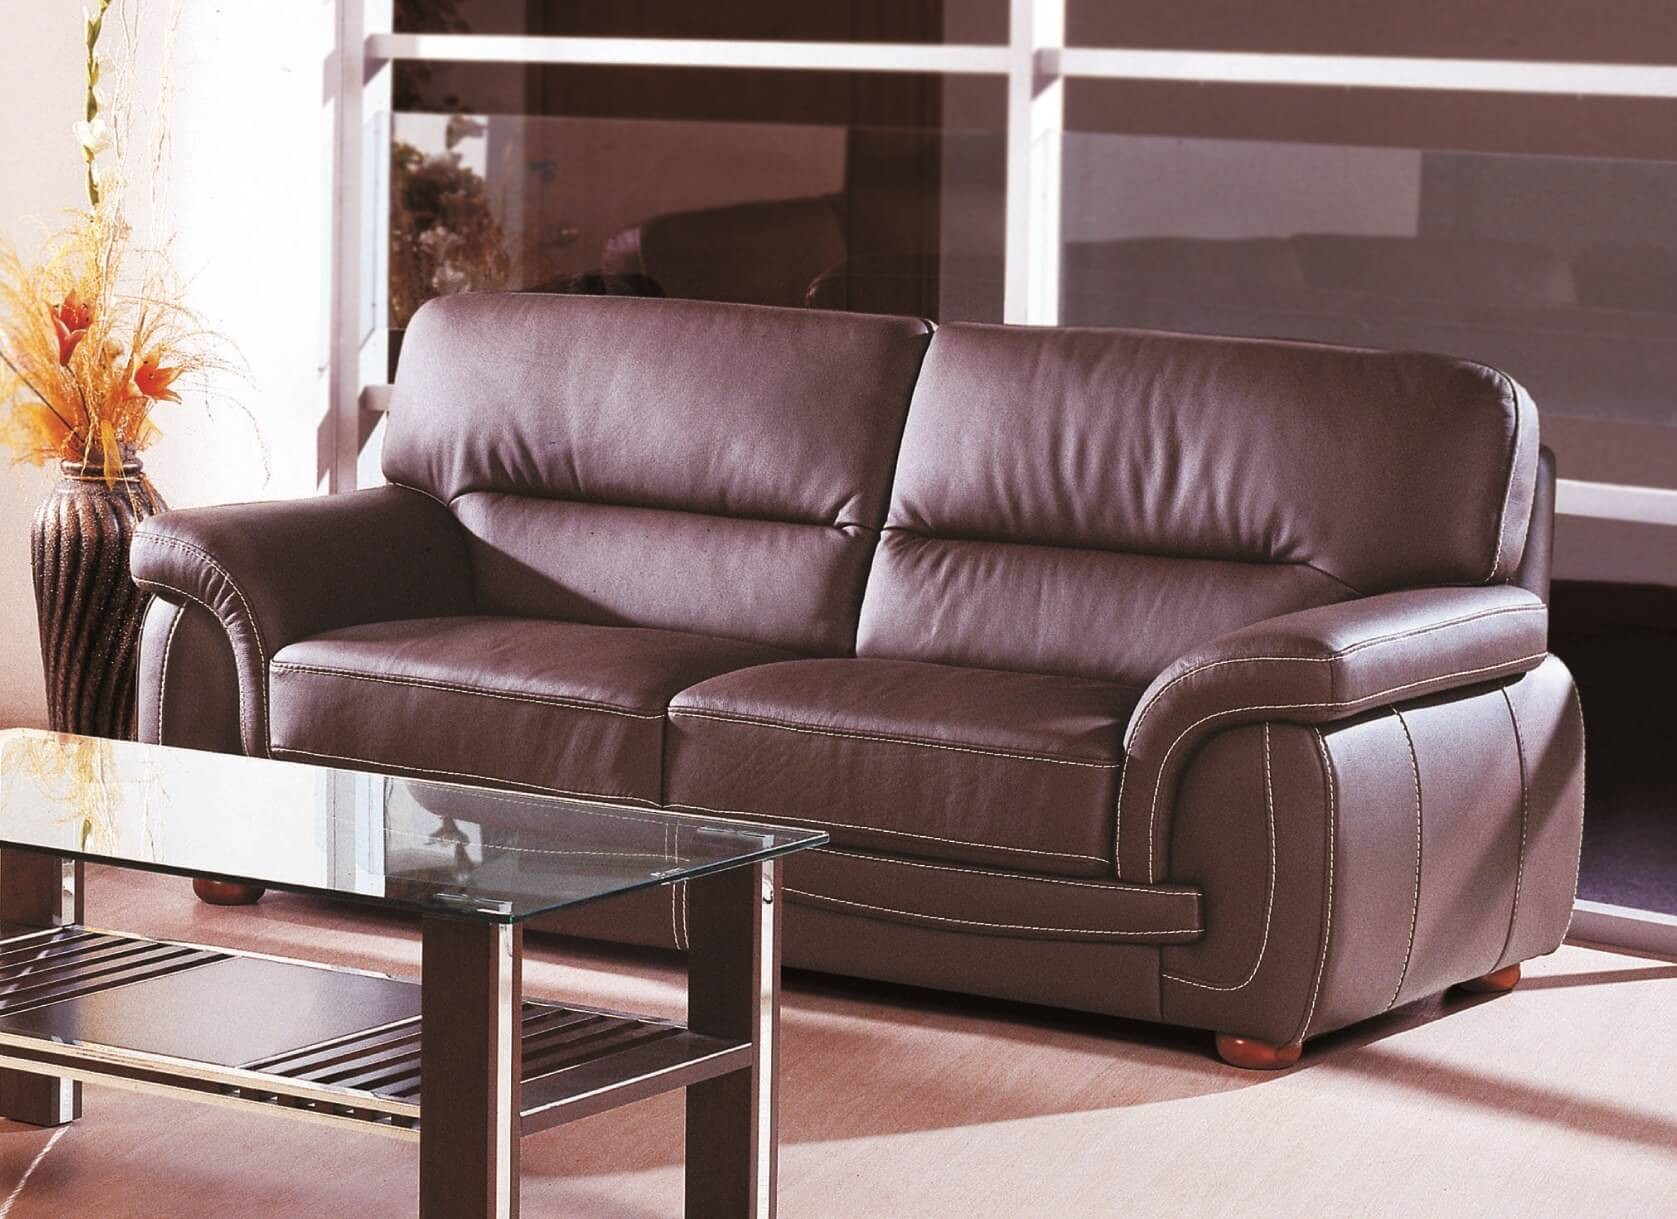 ✅ Sienna Top Grain Leather Match Sofa, Brown by Beverly Hills ...